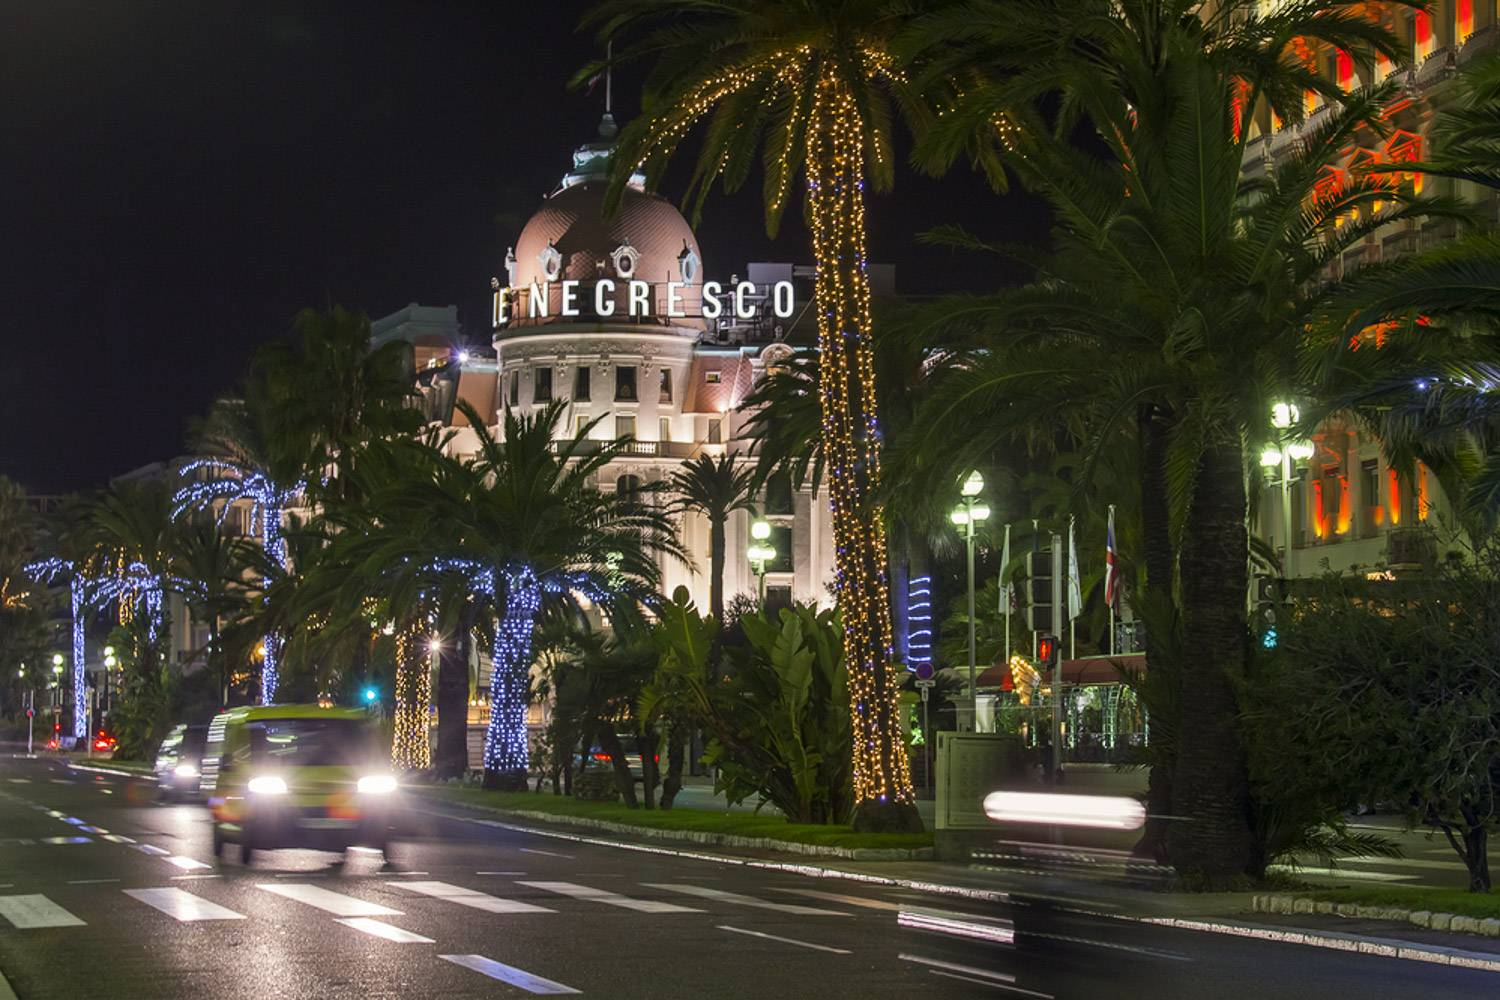 Image of Le Negresco hotel on the Promenade Anglais in Nice at night.